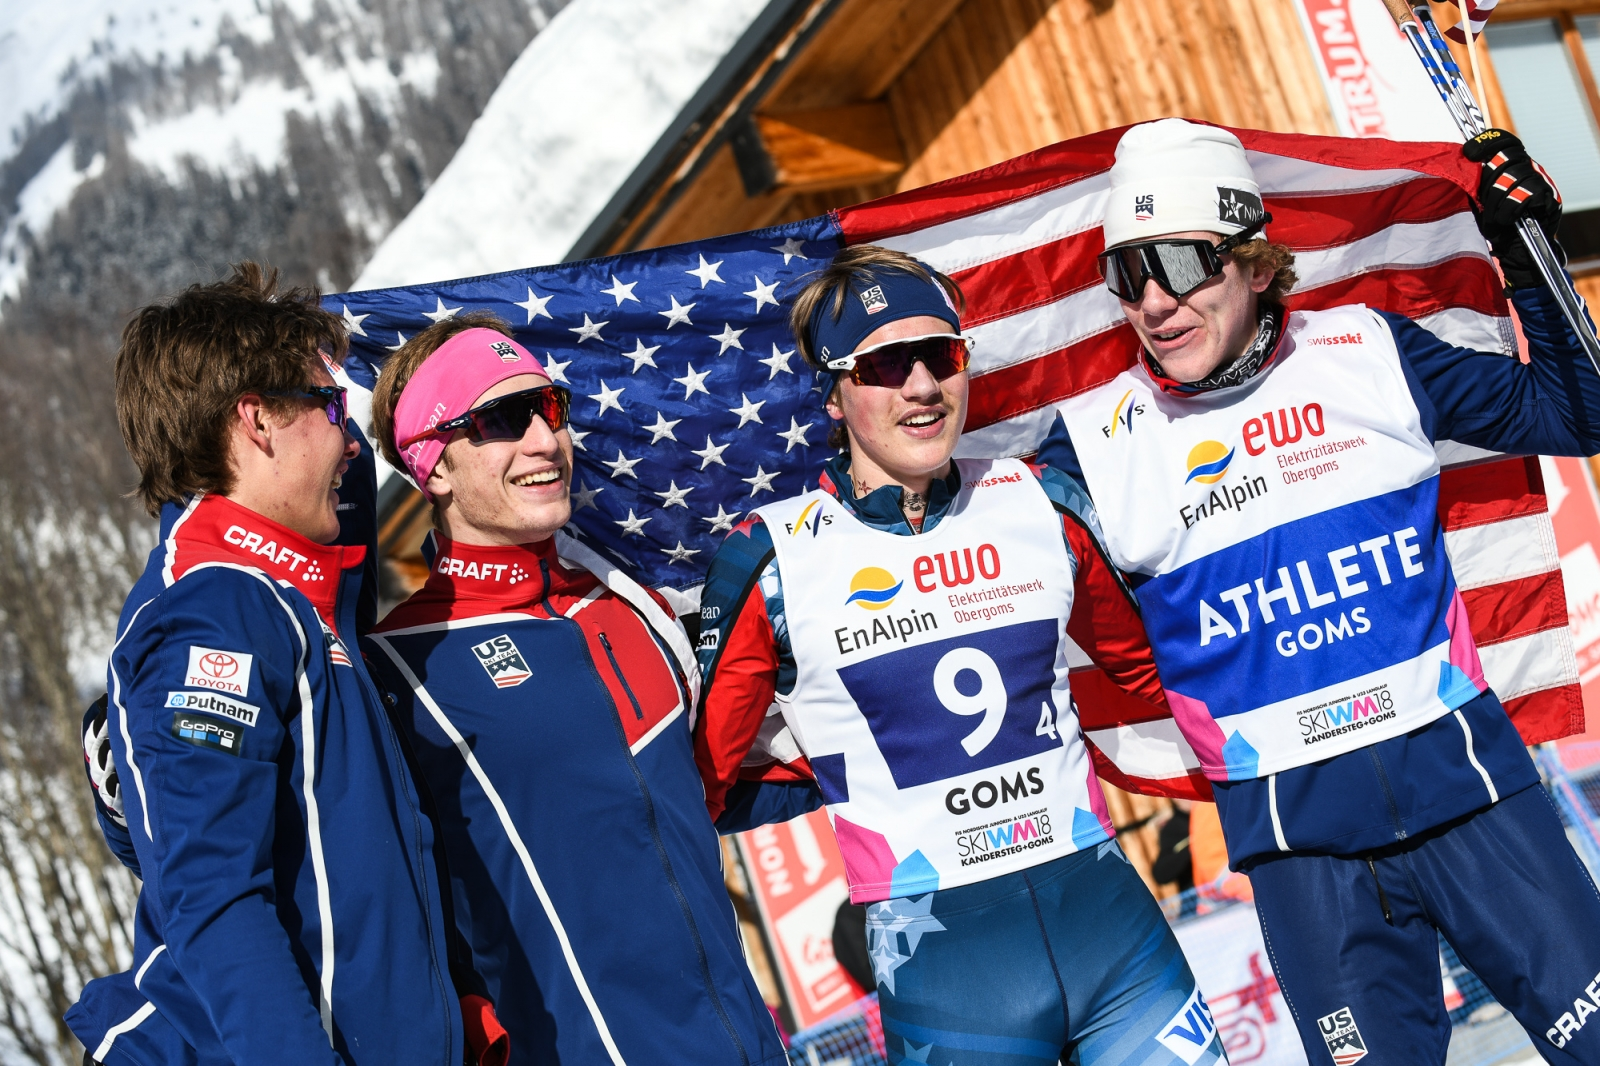 U.S. Ski & Snowboard Seeks Cross Country Development Coach